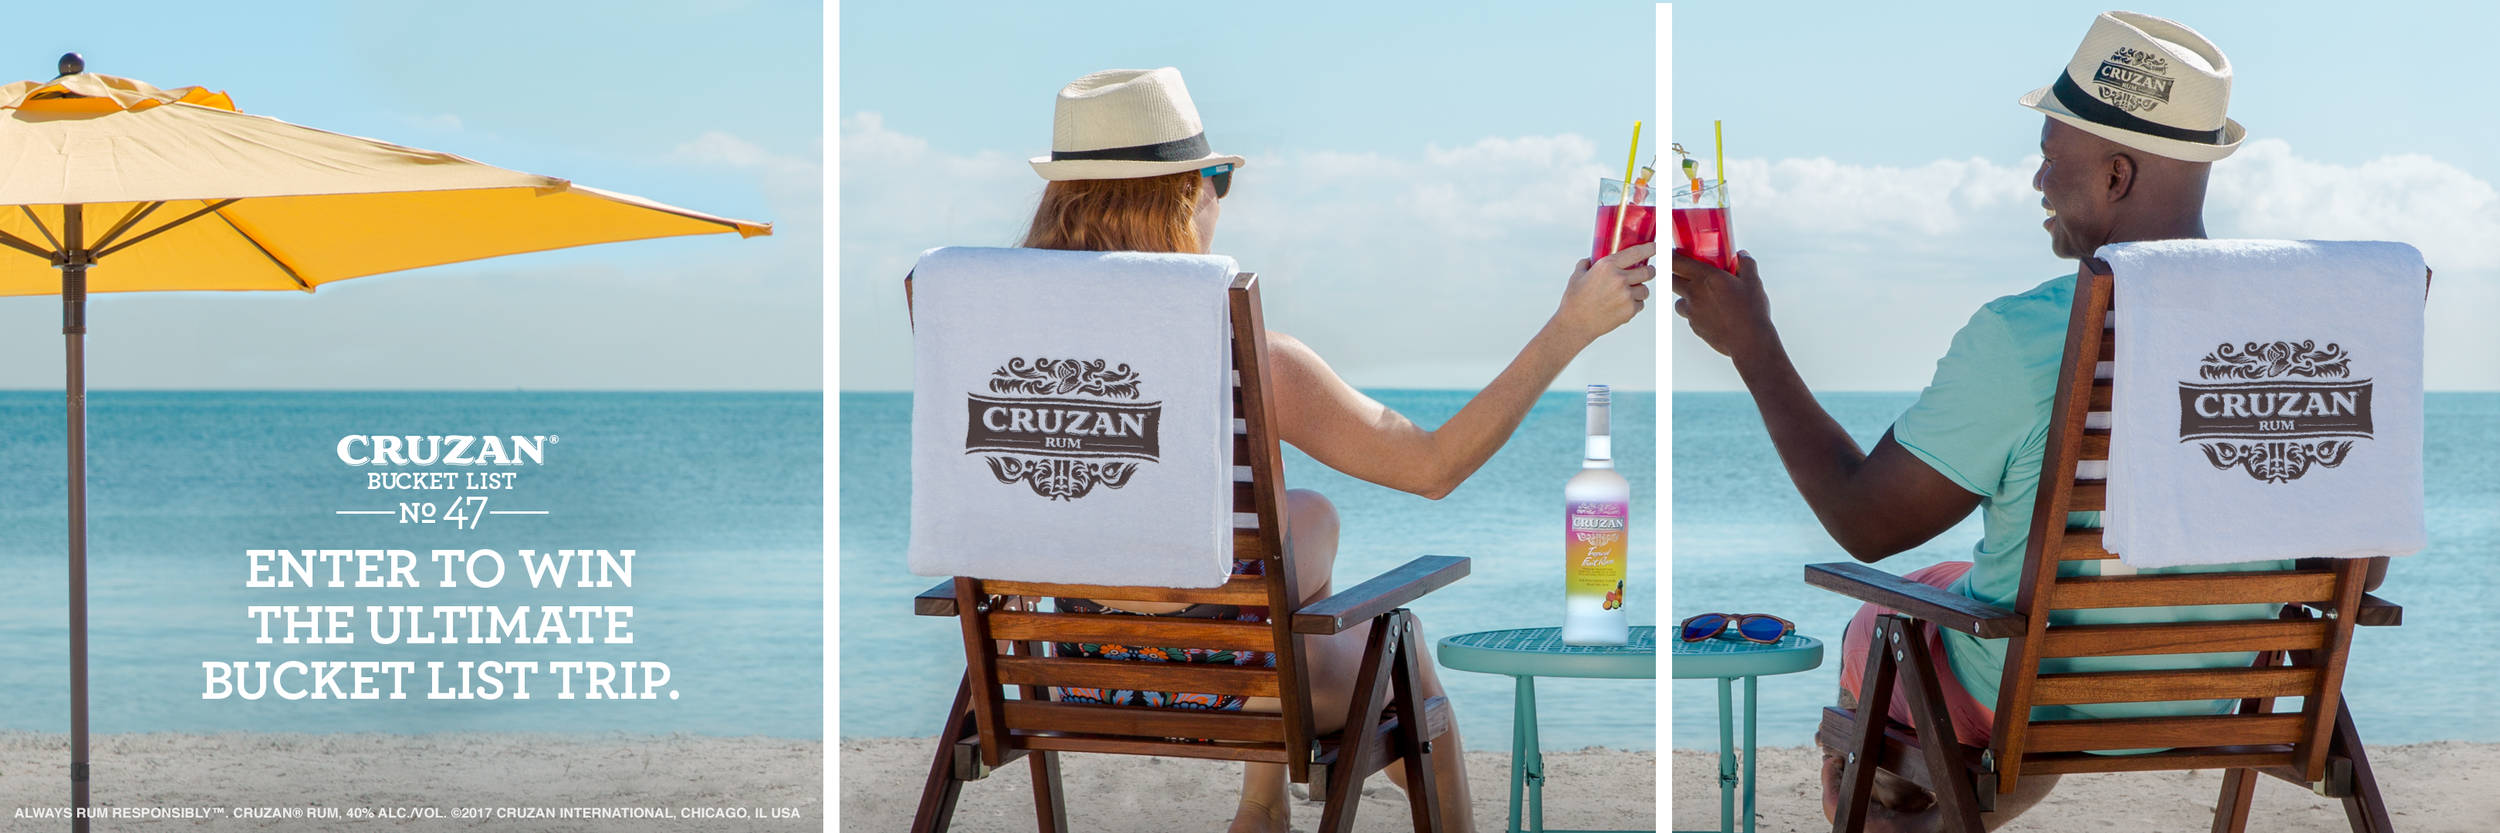 Cruzan-Beach-Sweeps-Carousel.png